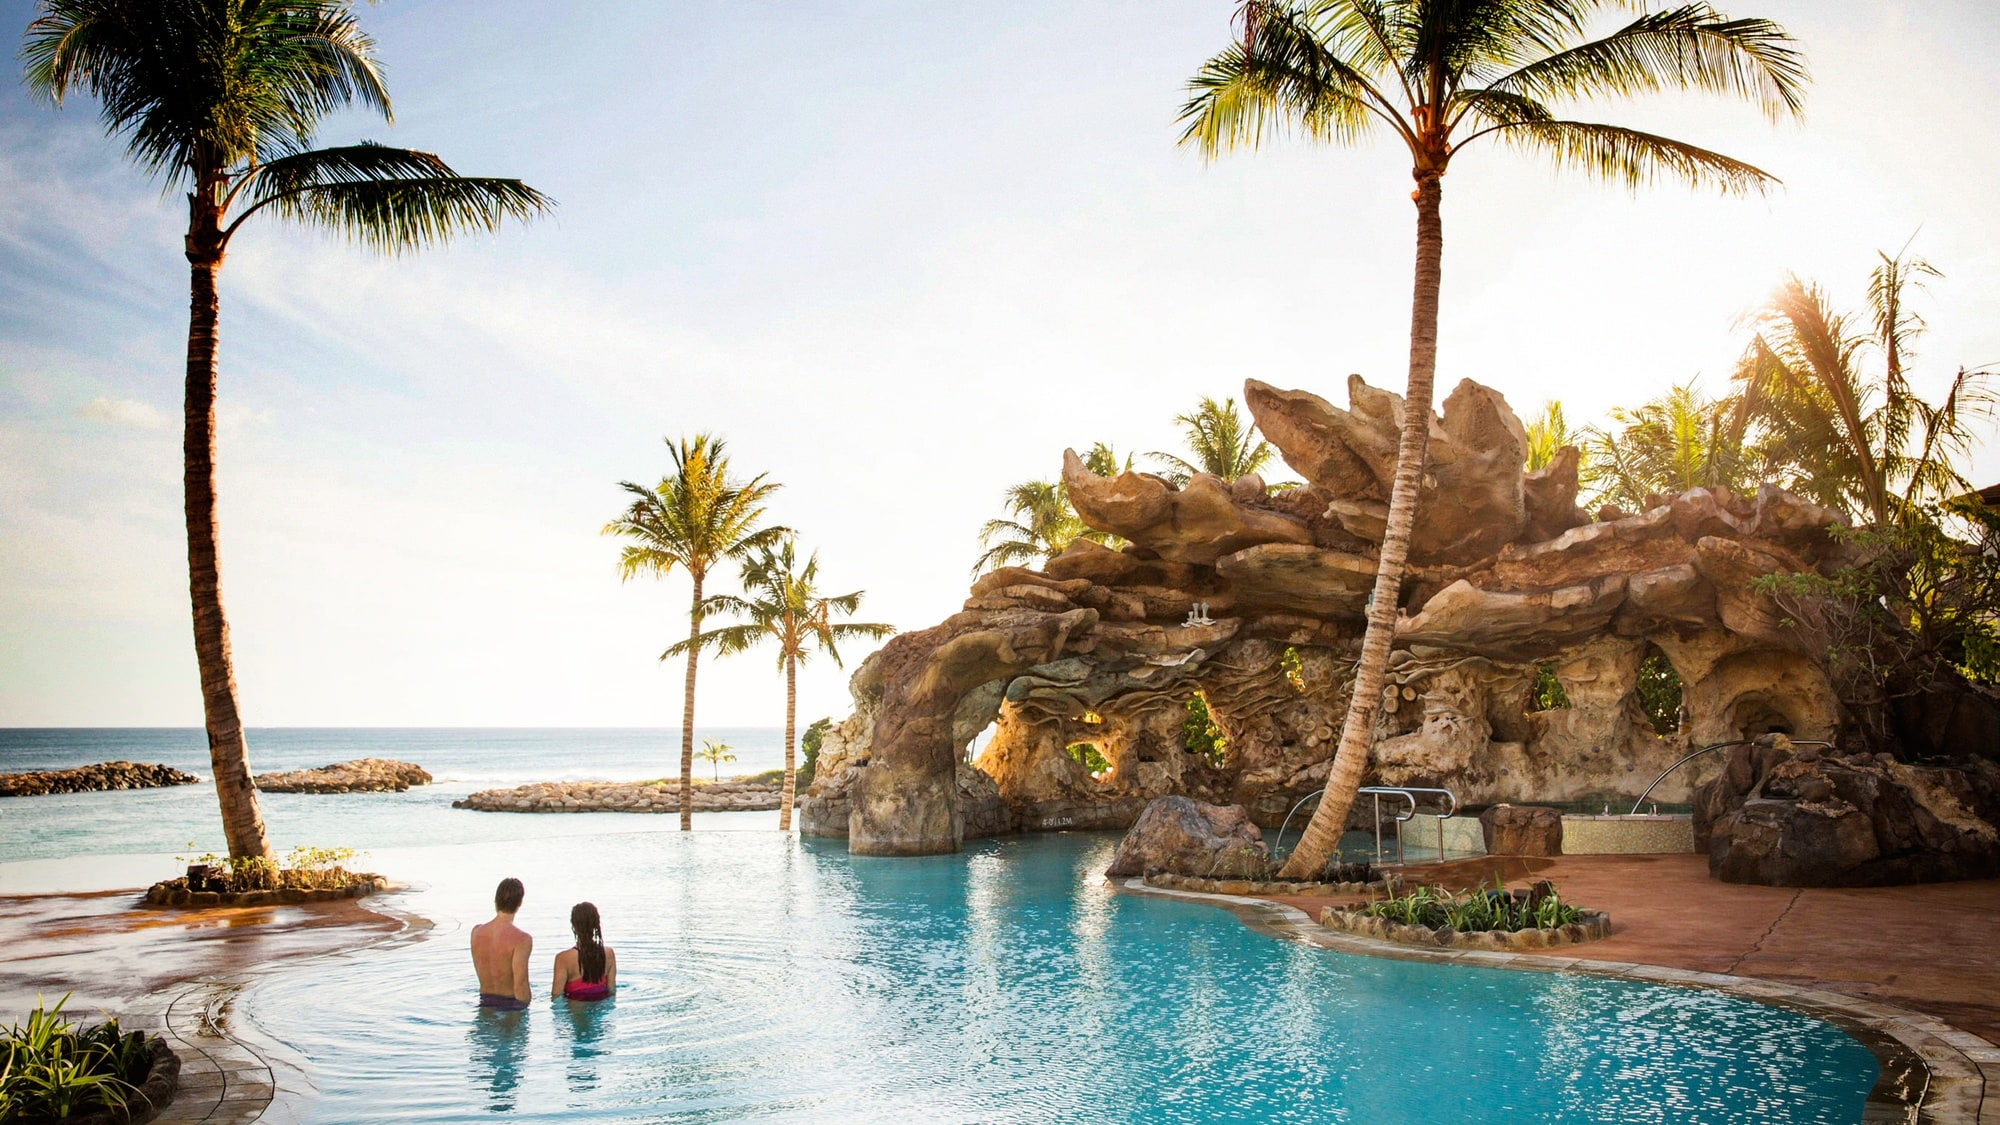 Ka Maka Landing is an infinity pool with incredible views at Aulani